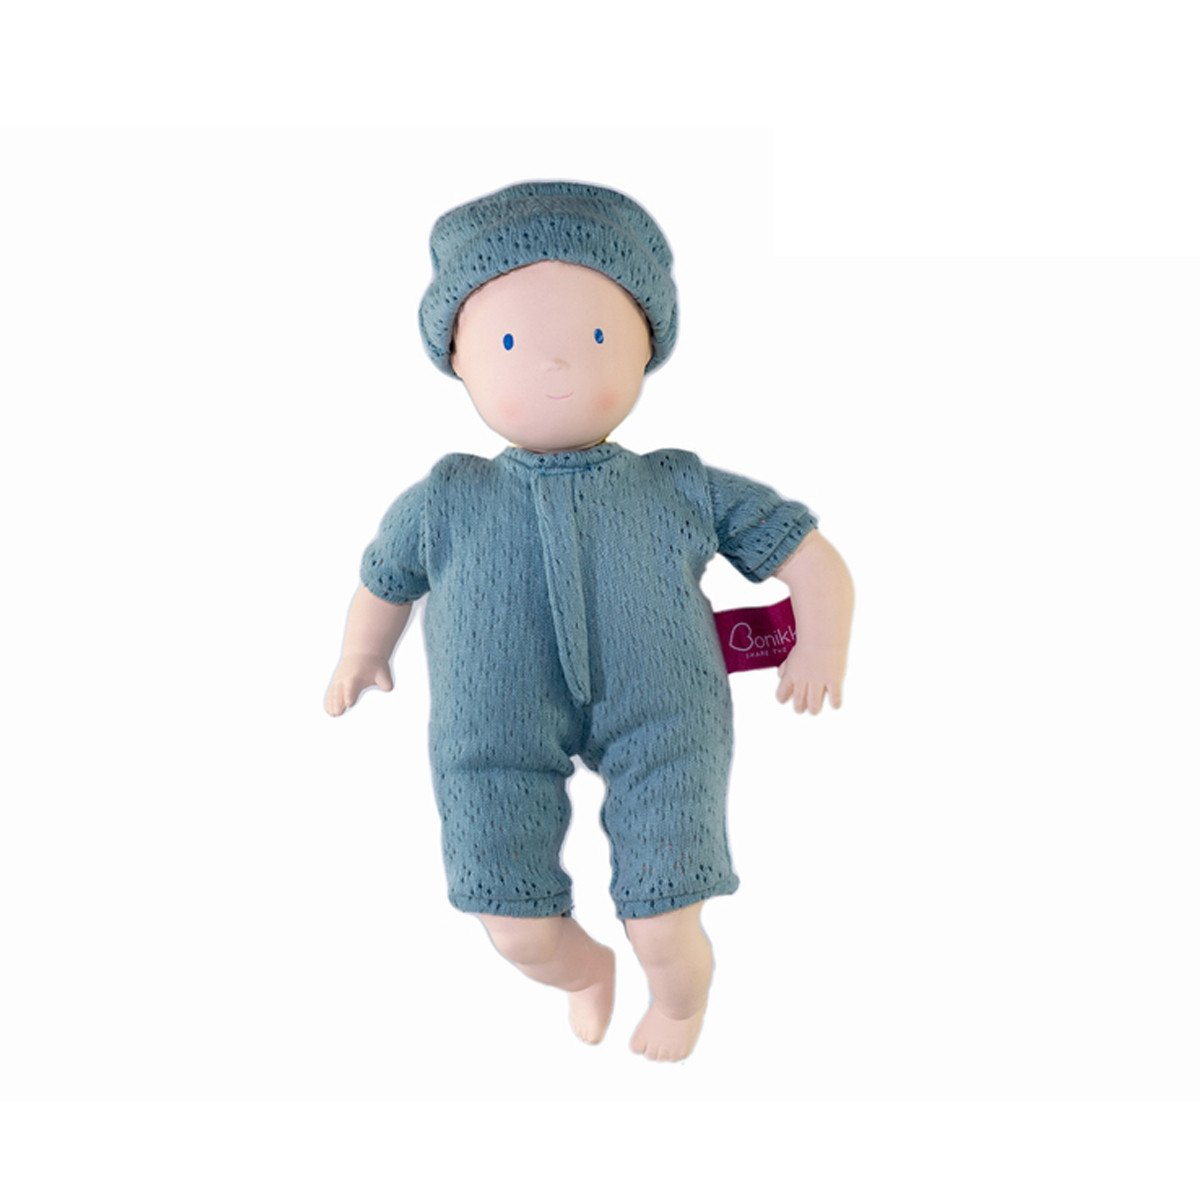 Natural Rubber Baby Doll Charlie - Little Earth Nest